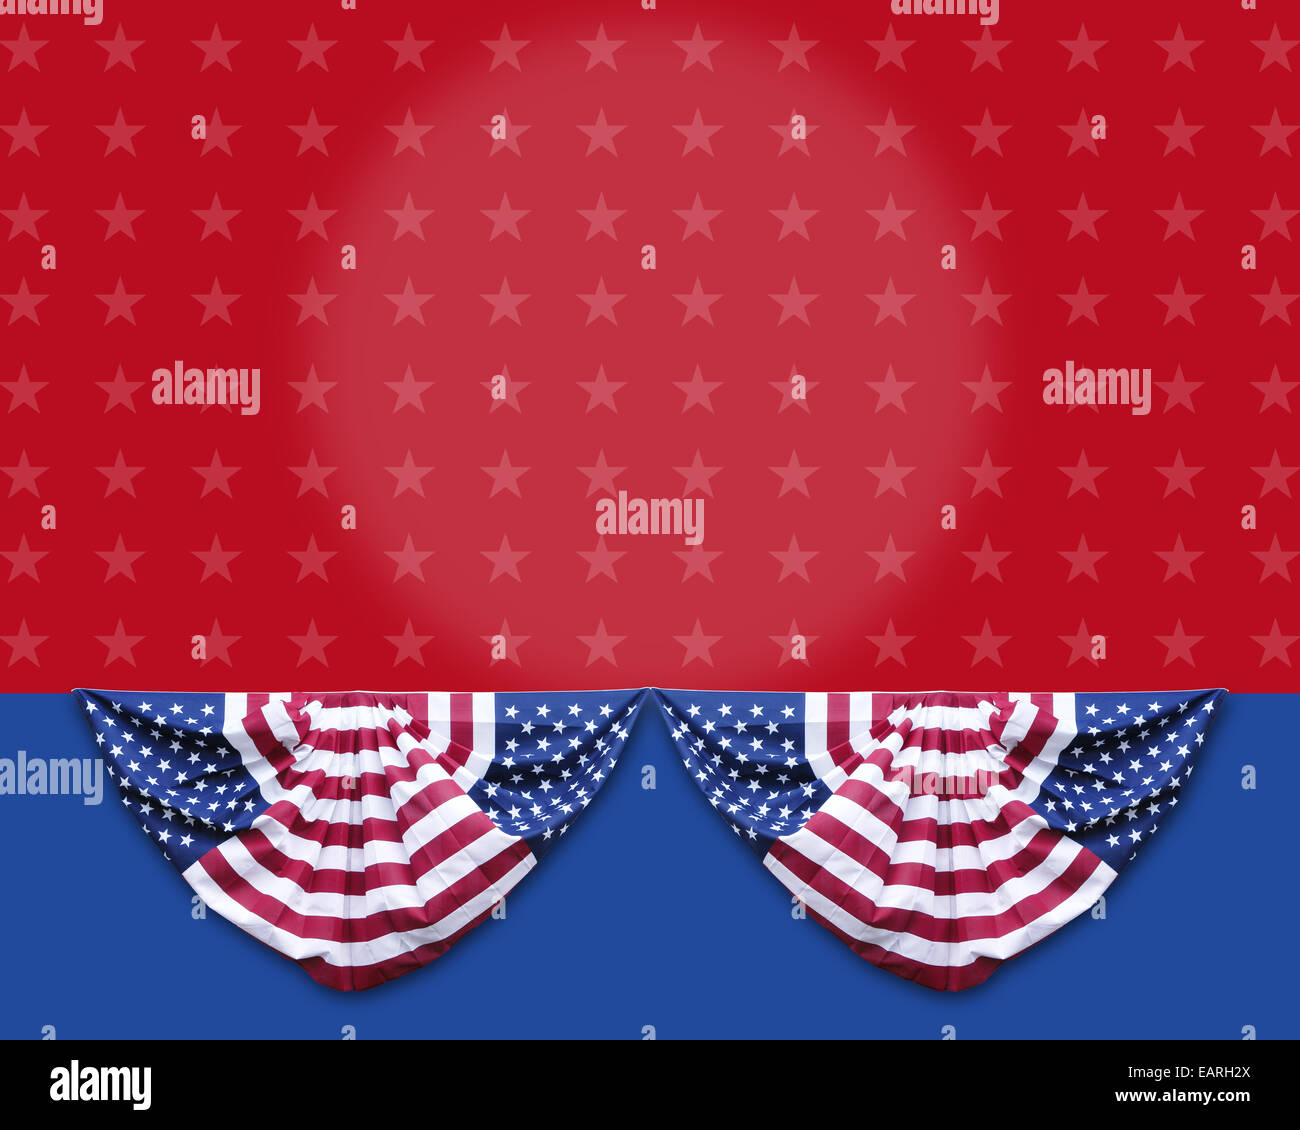 Election Poster Background Red White And Blue Election Campaign